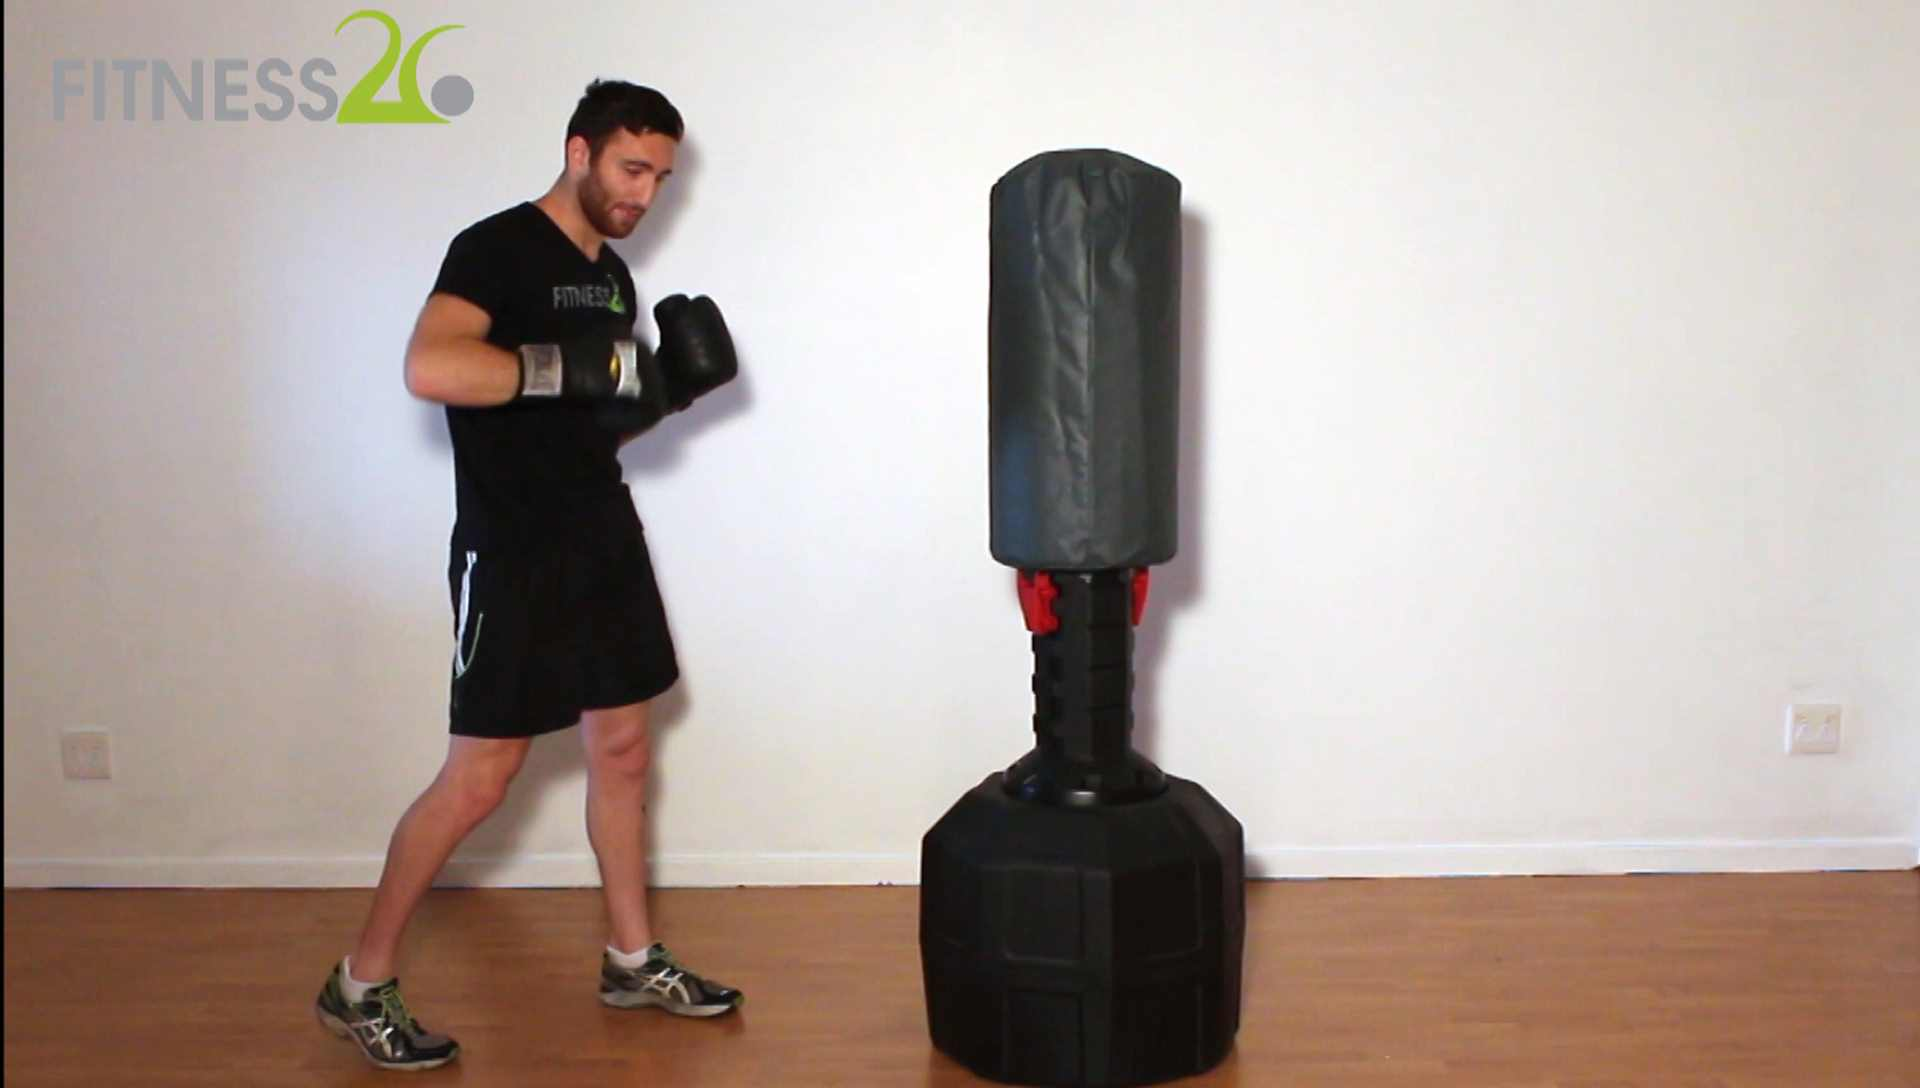 Josh – Using the Boxing bag correctly: Beginners